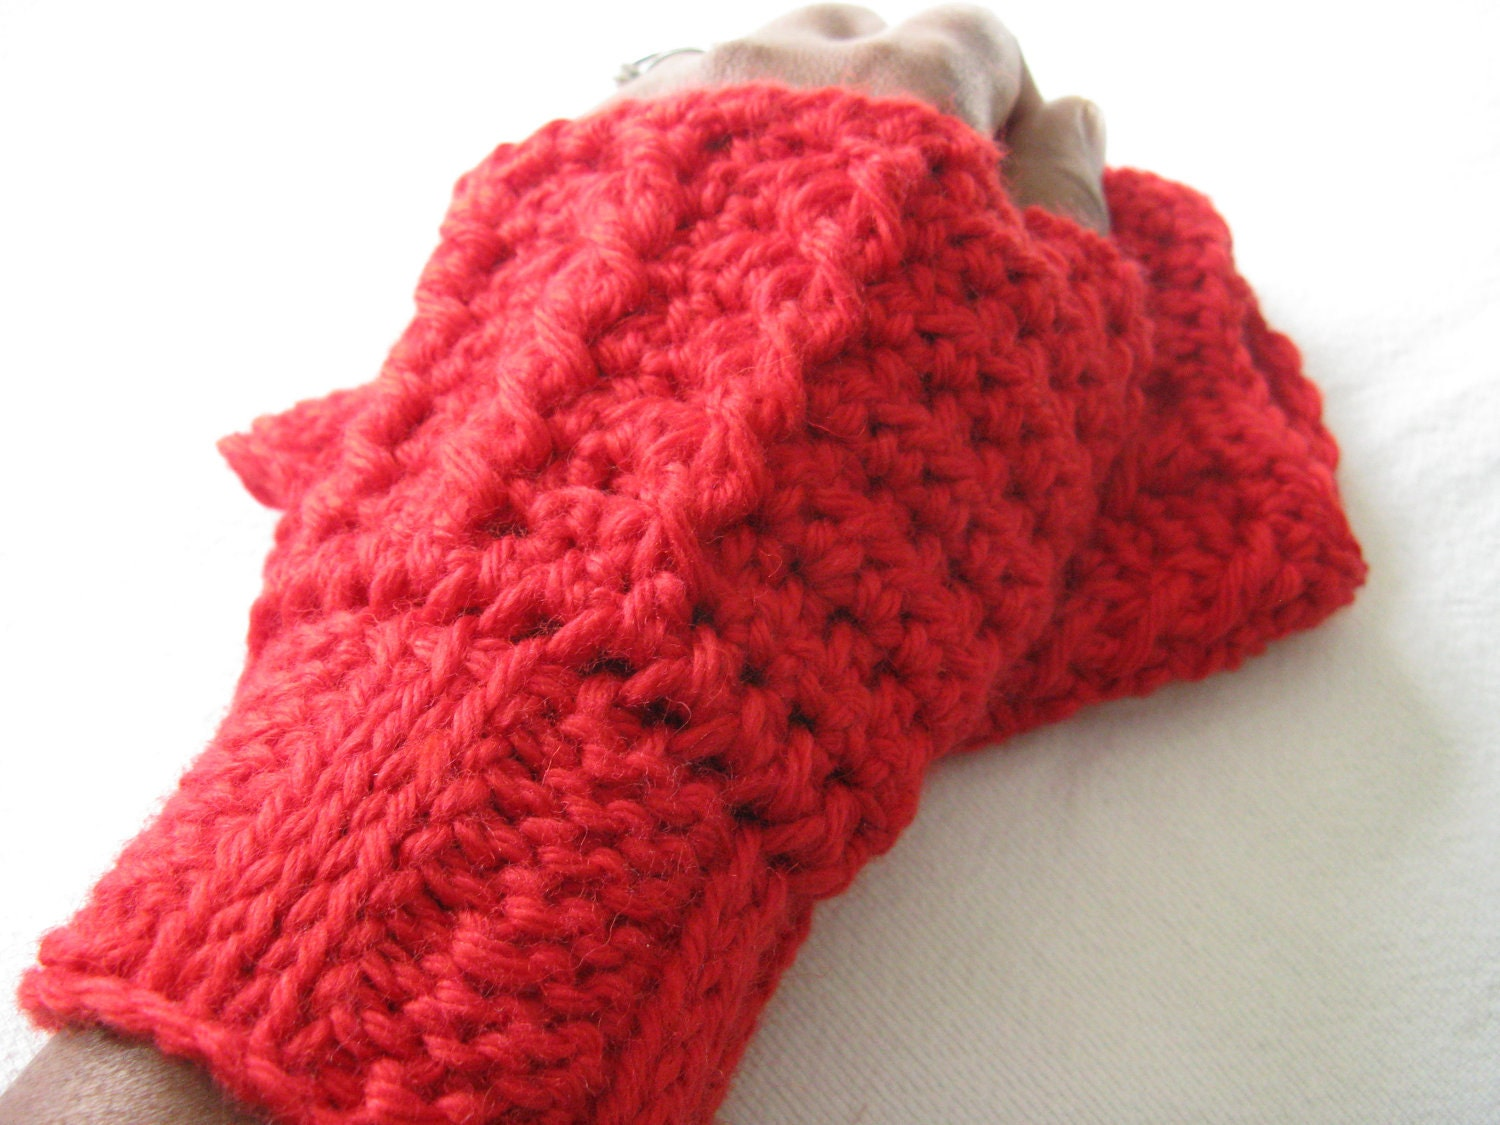 Tiny Cables Crochet Fashion Wristwarmers Pattern - Red - Gift